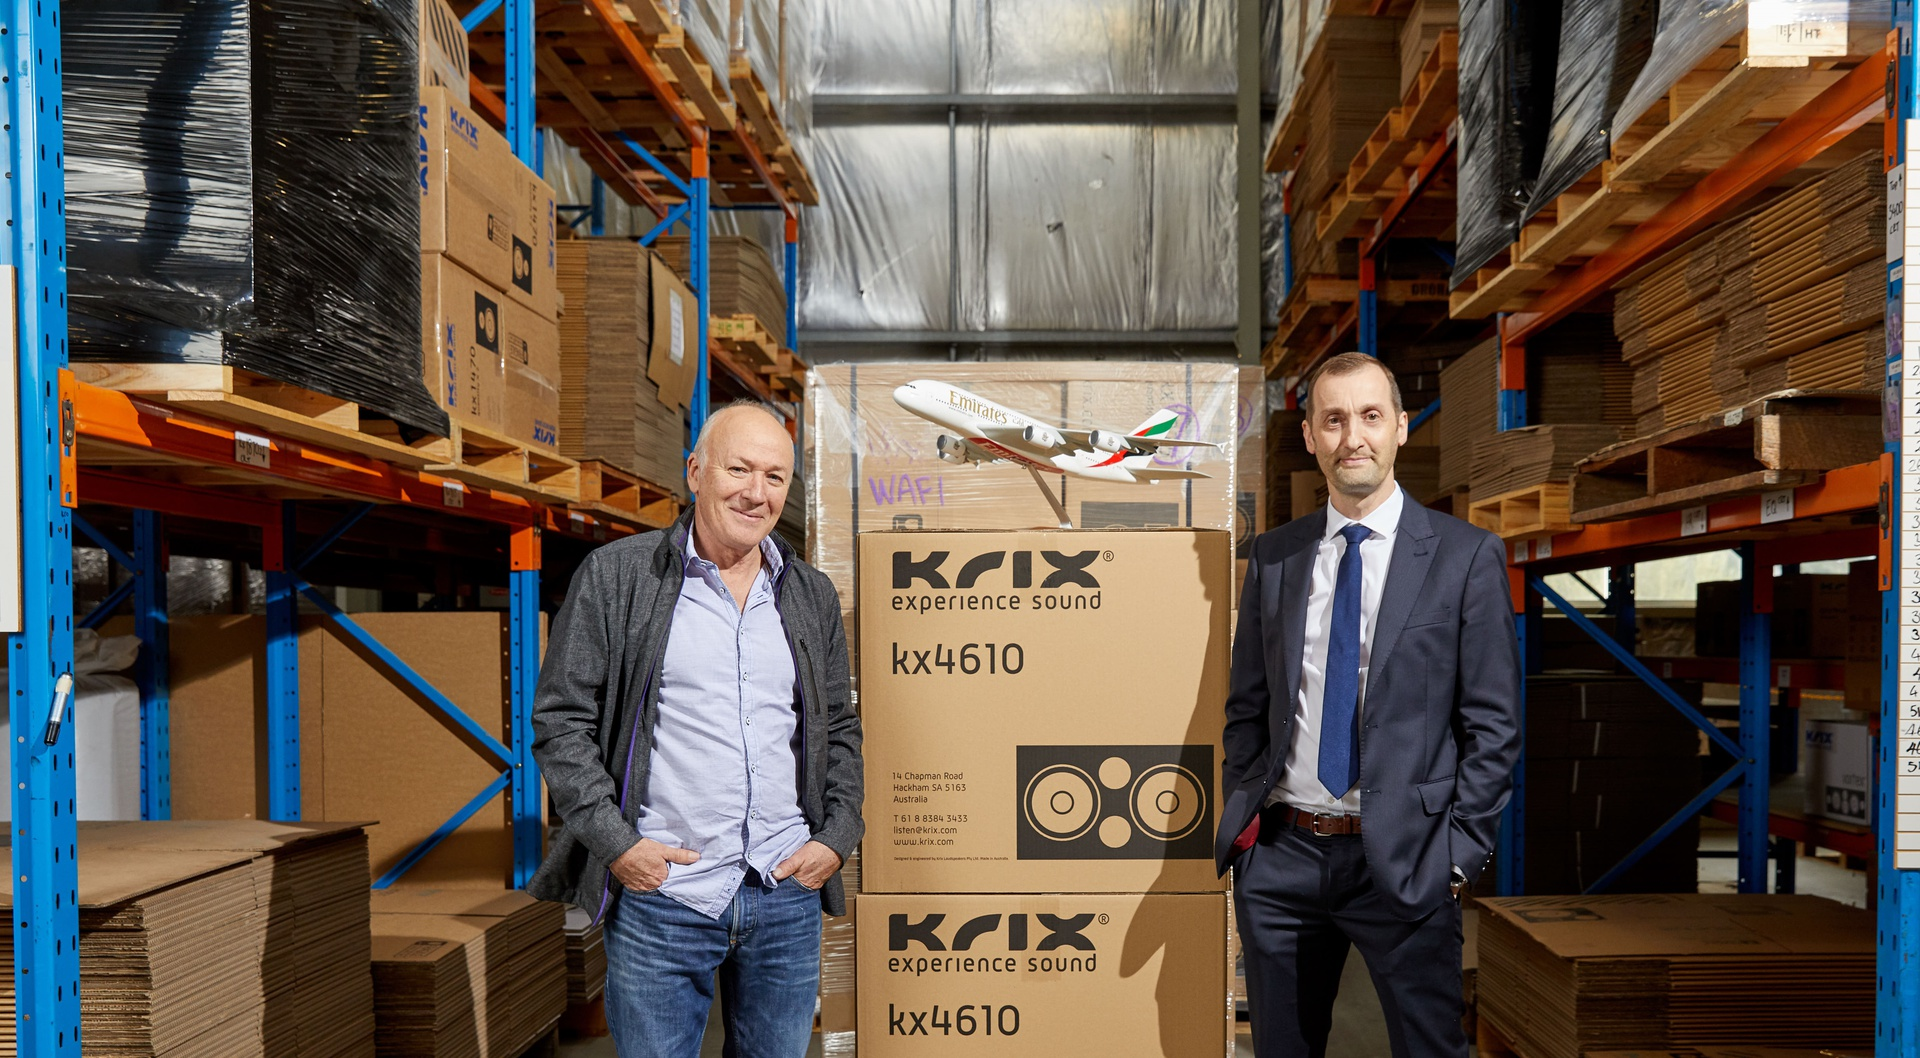 Ashley Krix, Commercial Cinema Sales Director, Krix Speakers (left) and Jason Brown, Adelaide Cargo Manager for Emirates SkyCargo (right). Emirates SkyCargo has helped Krix expand its overseas business.